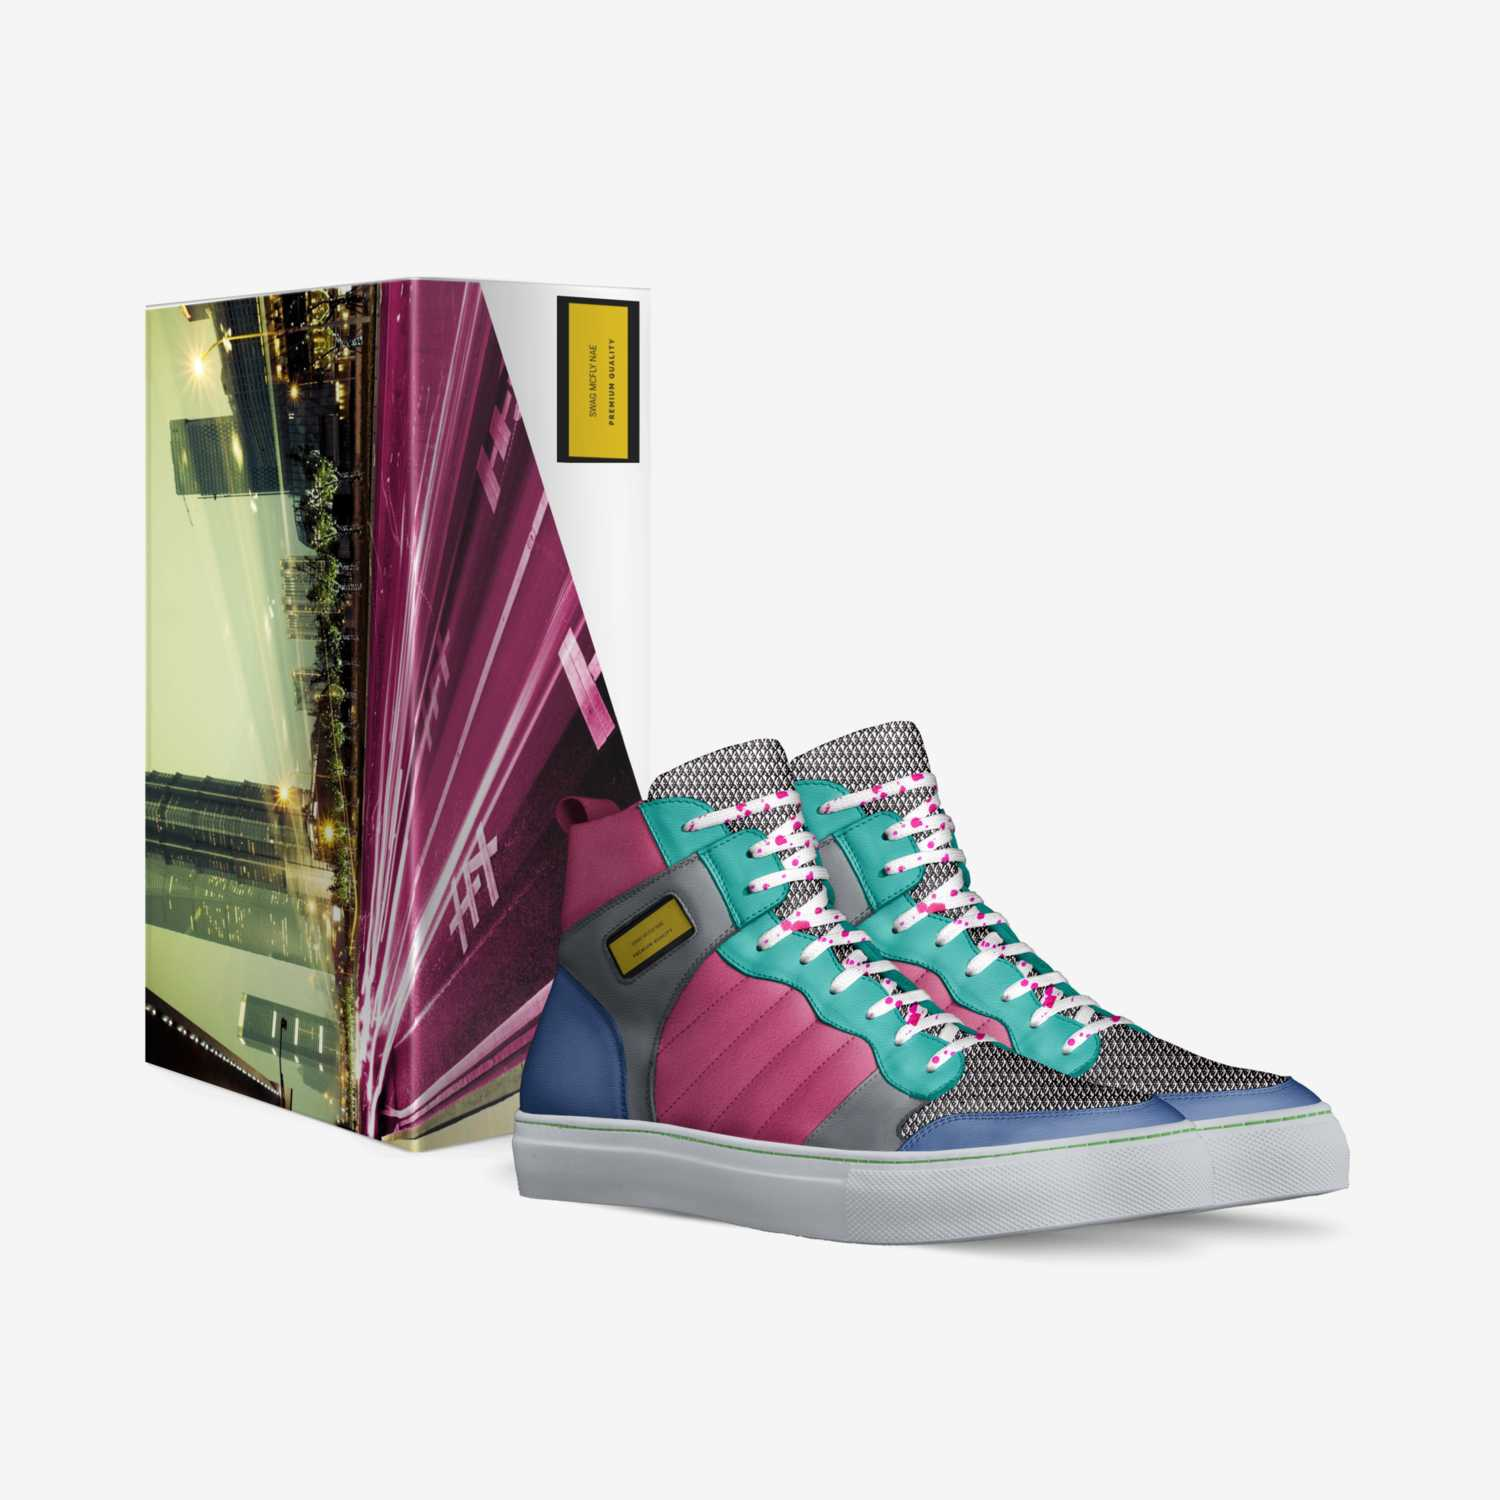 Swag McFly Nae custom made in Italy shoes by Rechard R Newman   Box view